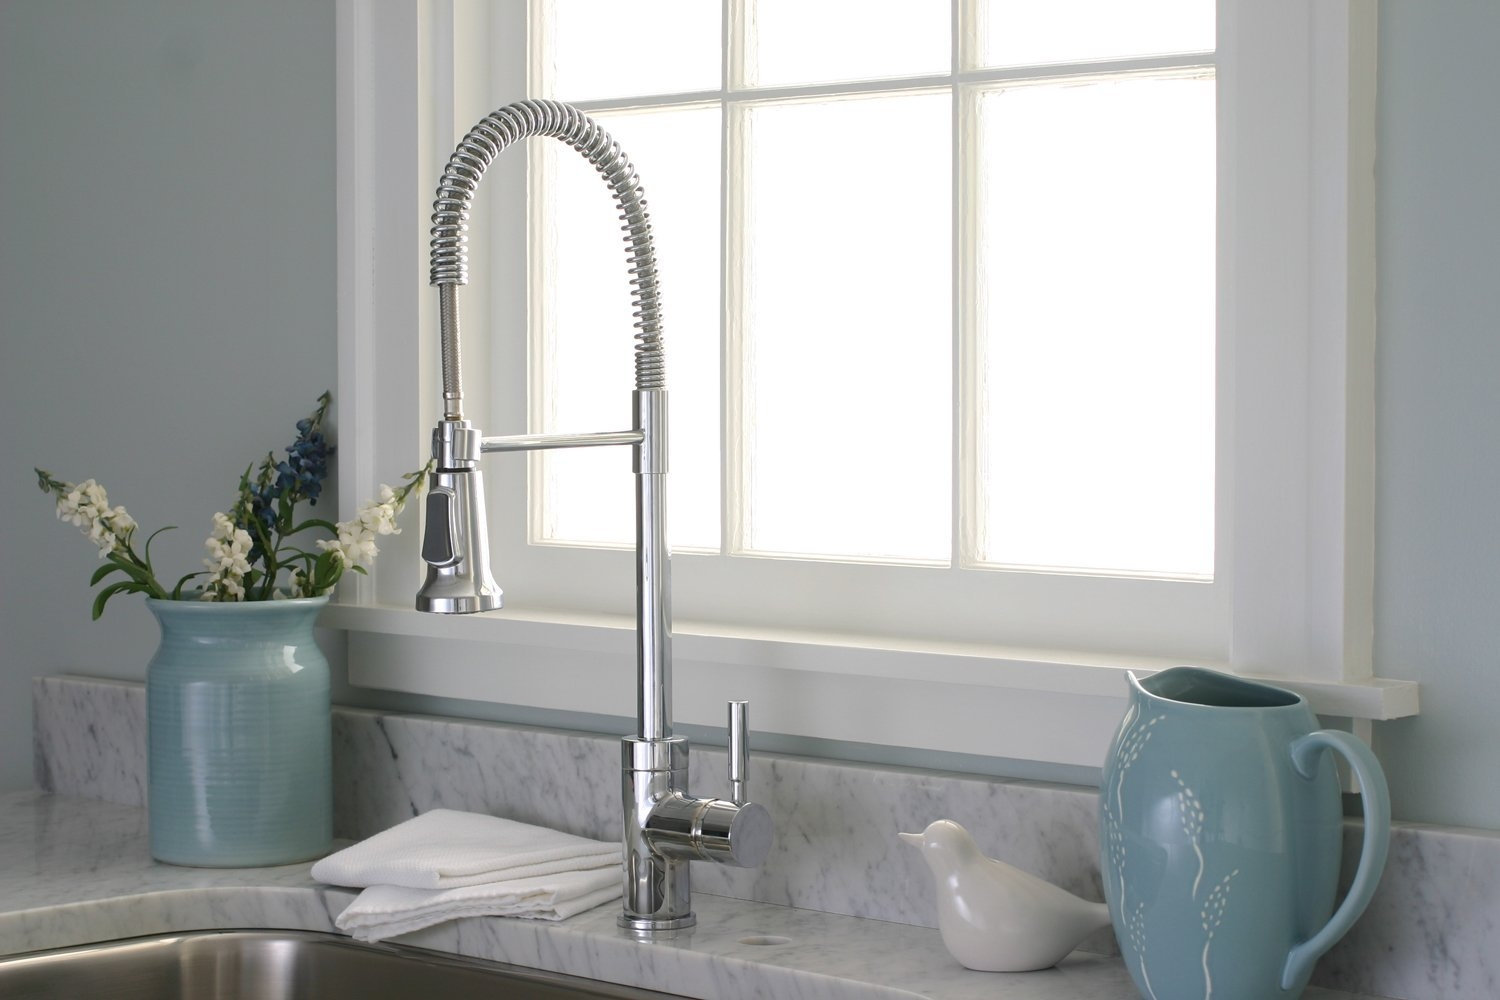 industrial style kitchen faucets industrial style kitchen faucets home design ideas best industrial style kitchen faucet industrial 1500 x 1000